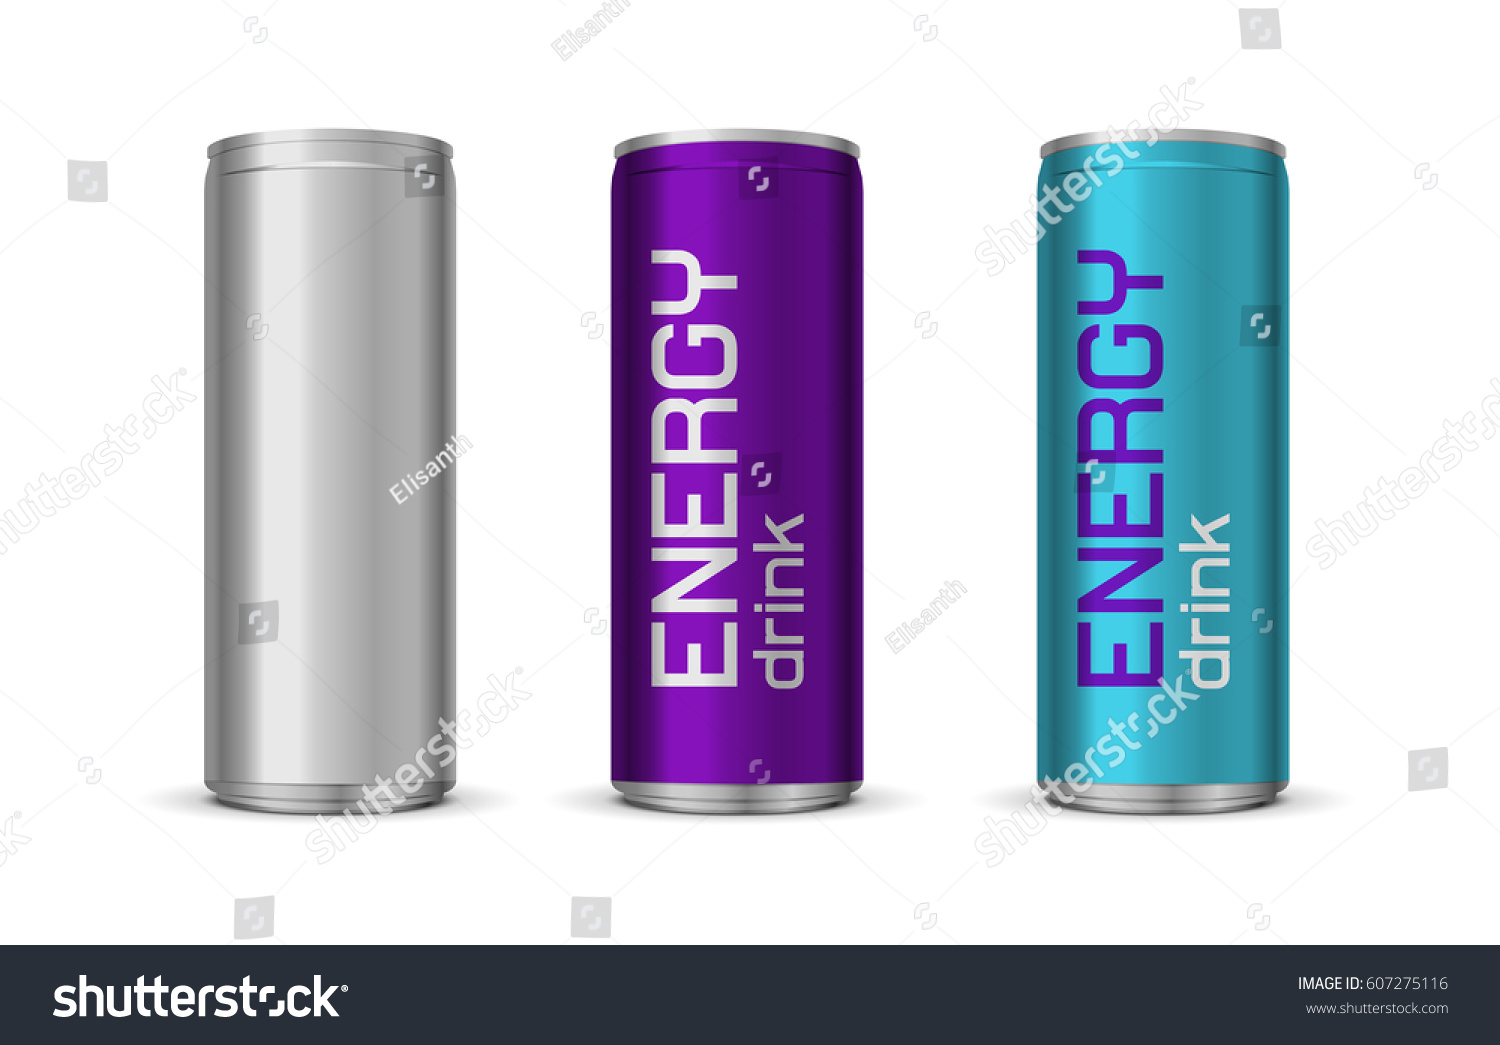 Vector Illustration Bright Energy Drink Cans Vector de stock (libre ...